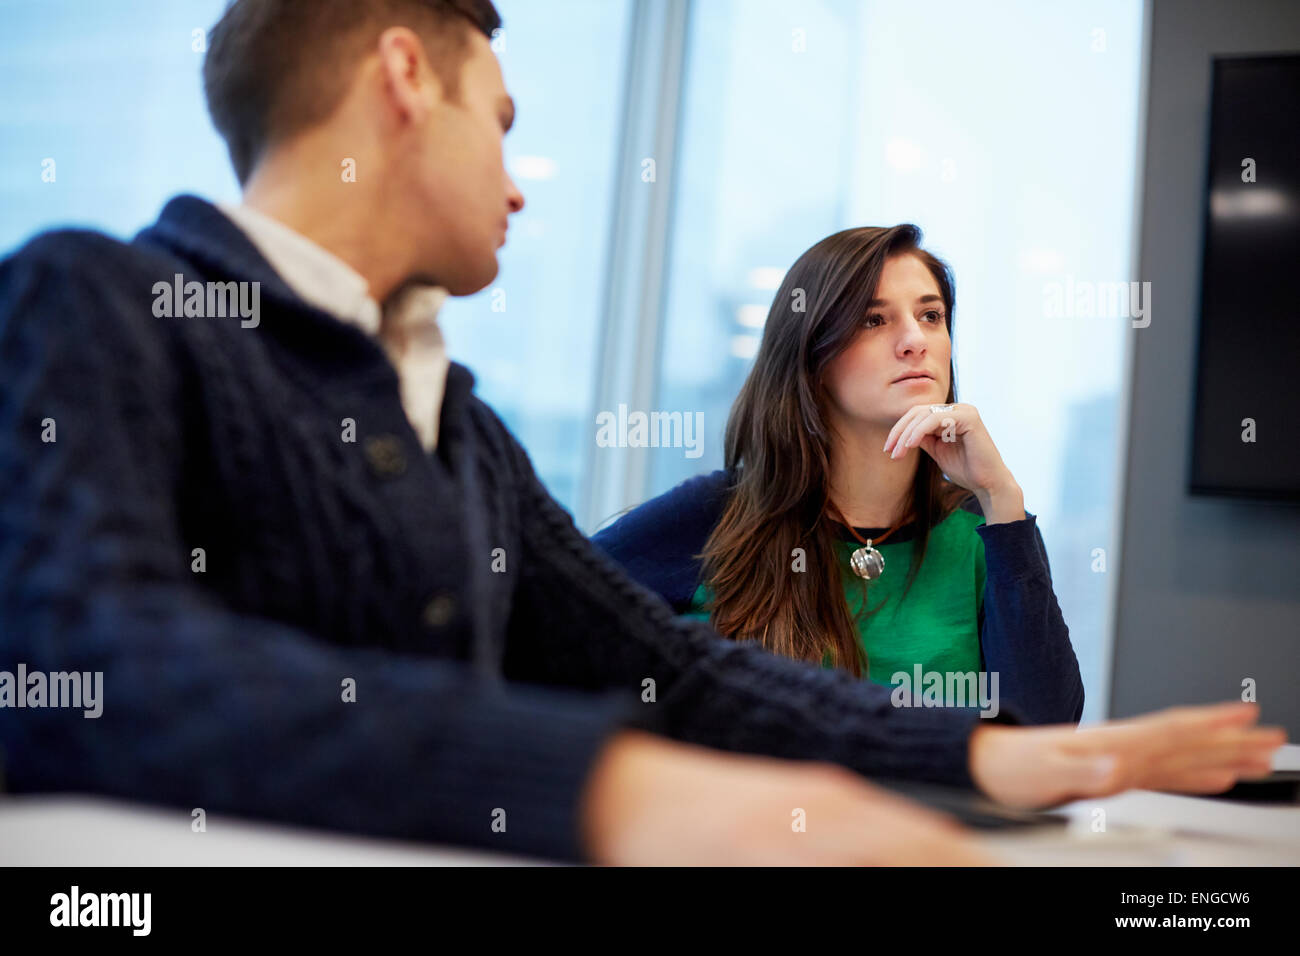 A man and woman seated at a meeting in an office. - Stock Image